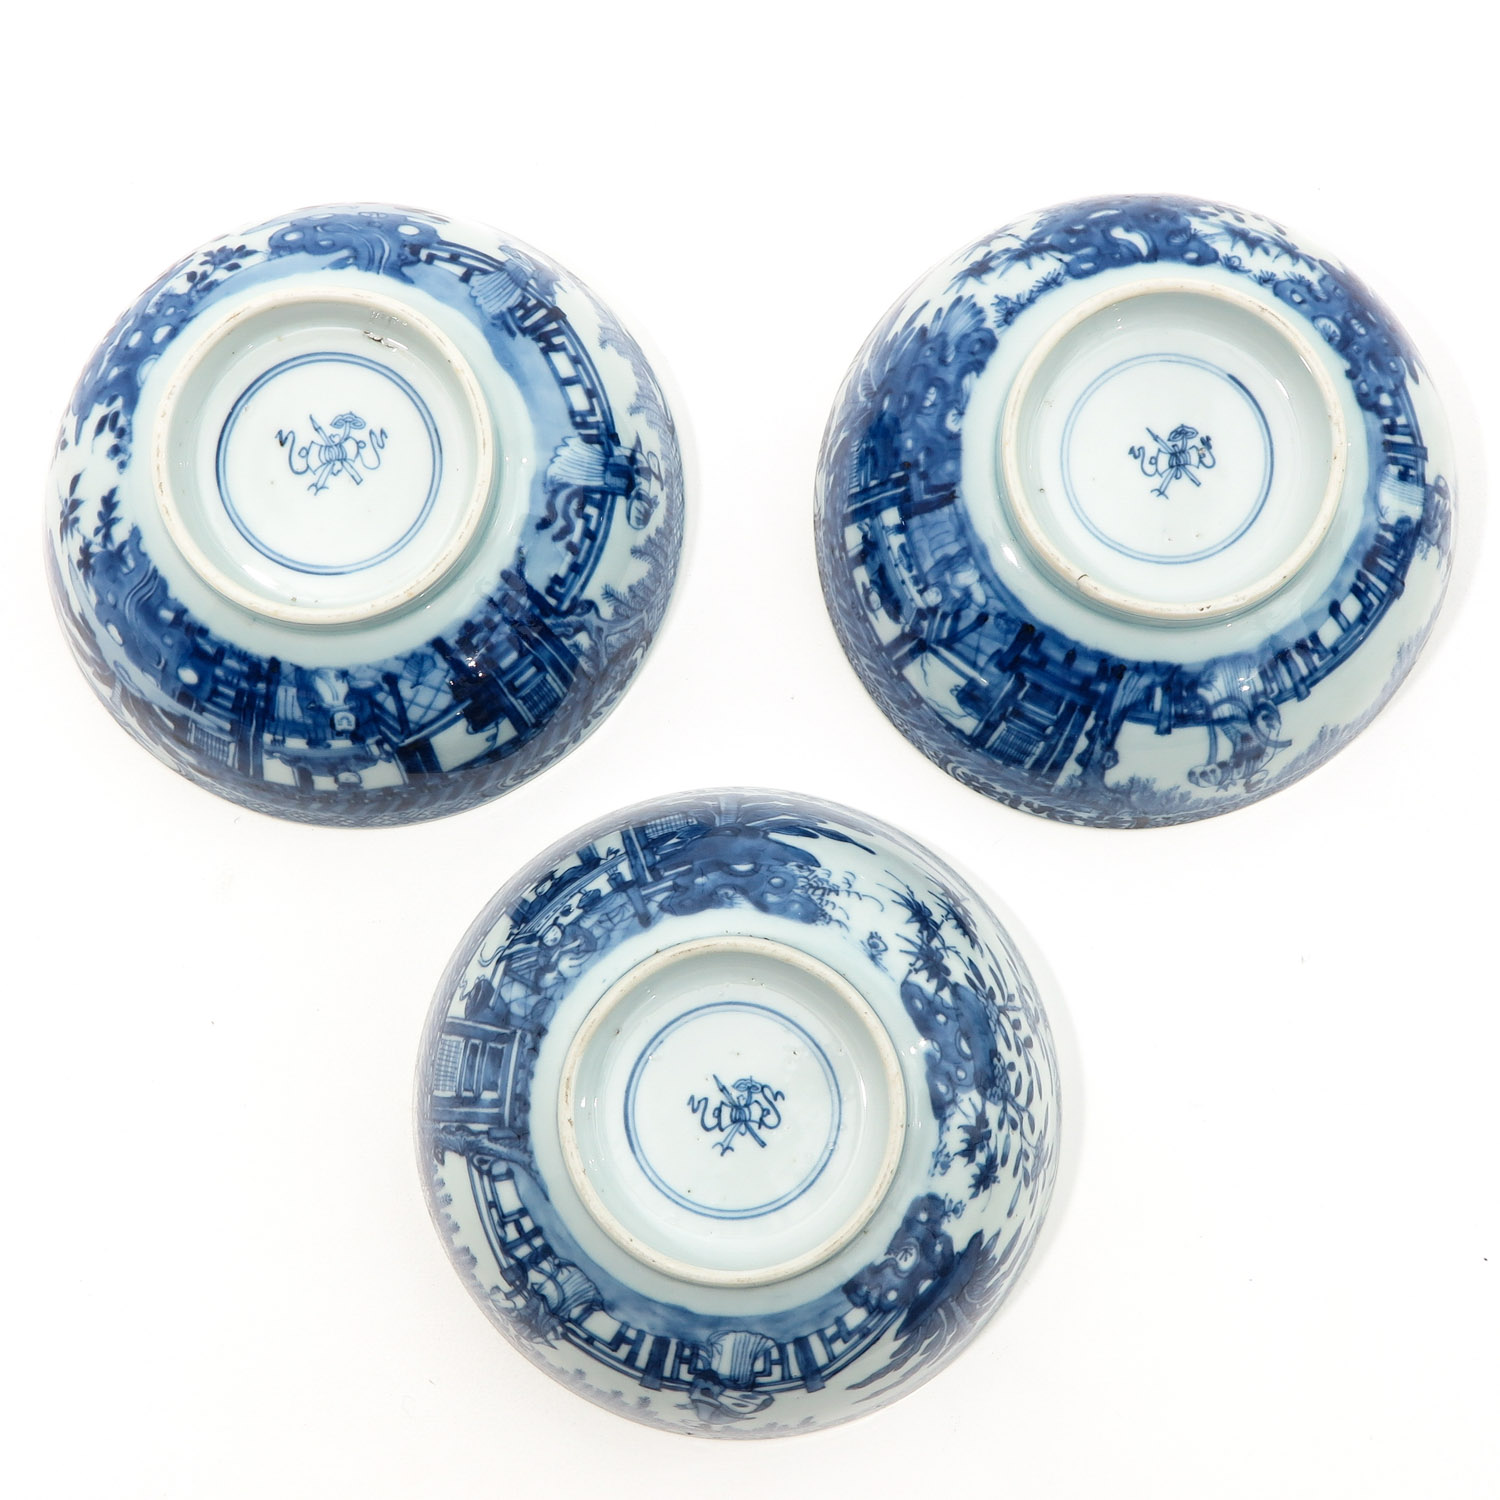 A Series of 3 Blue and White Bowls - Image 6 of 10